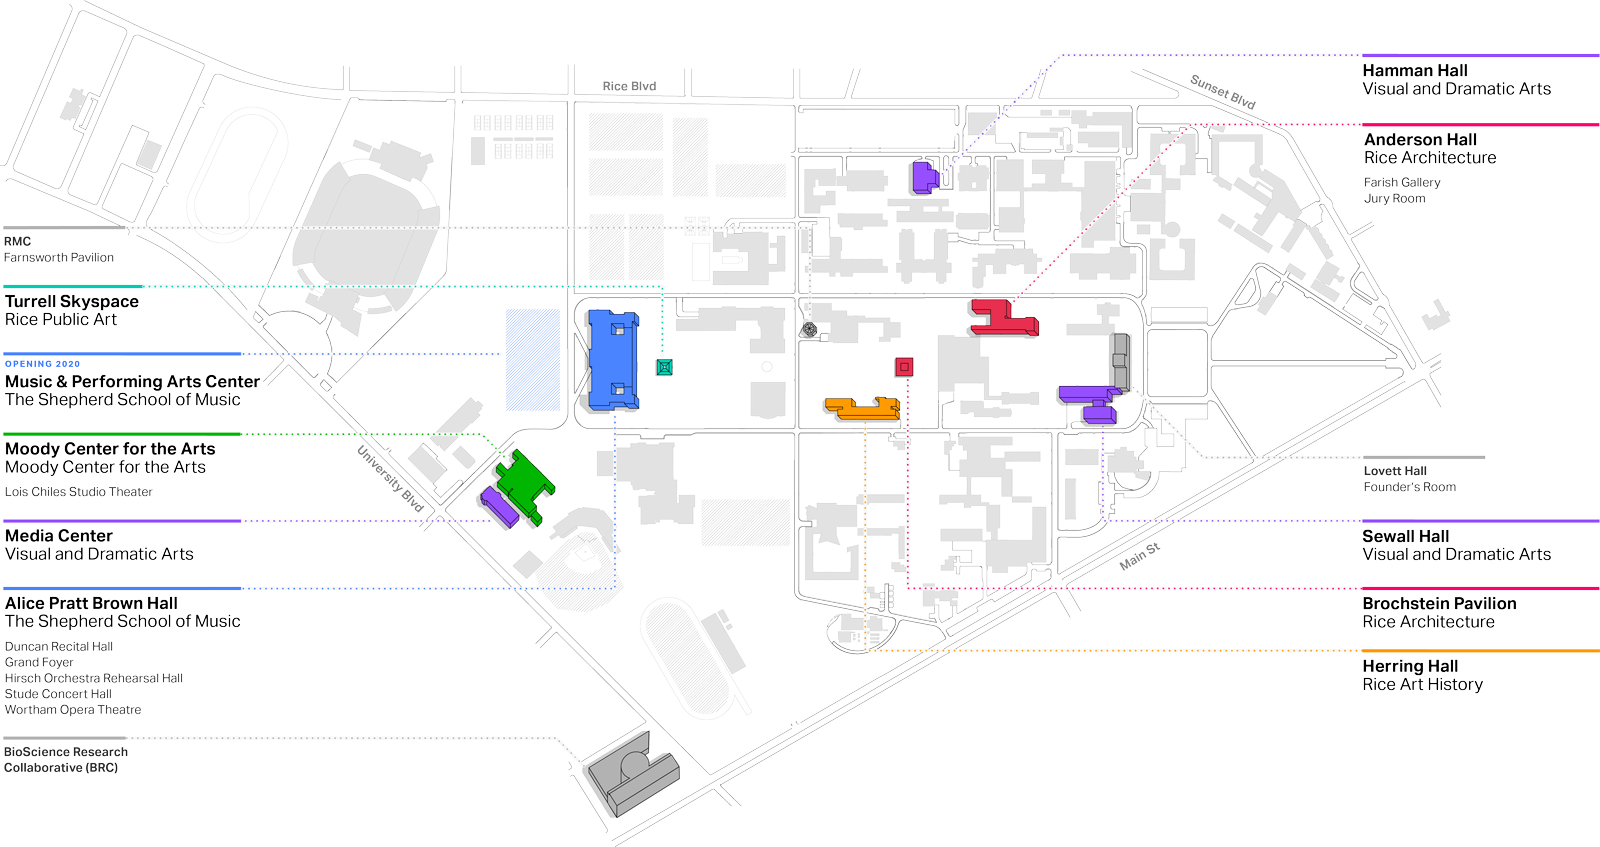 A map of venues on the Rice campus